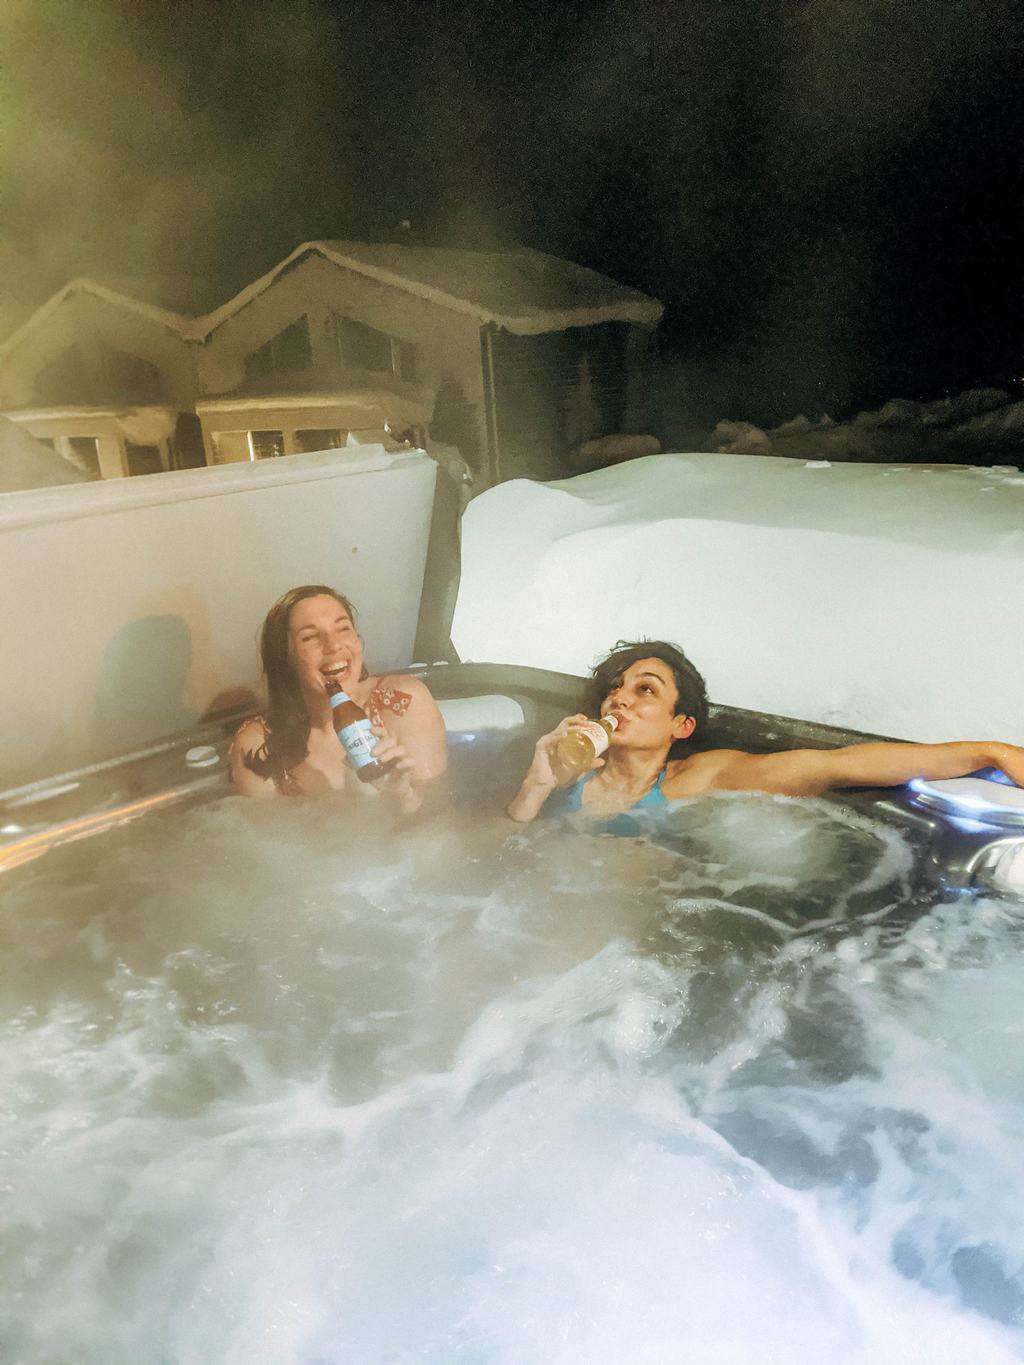 Two women enjoying a beer in a jacuzzi Finnish Lapland, Lapland destinations, Lapland Finland, Inghams